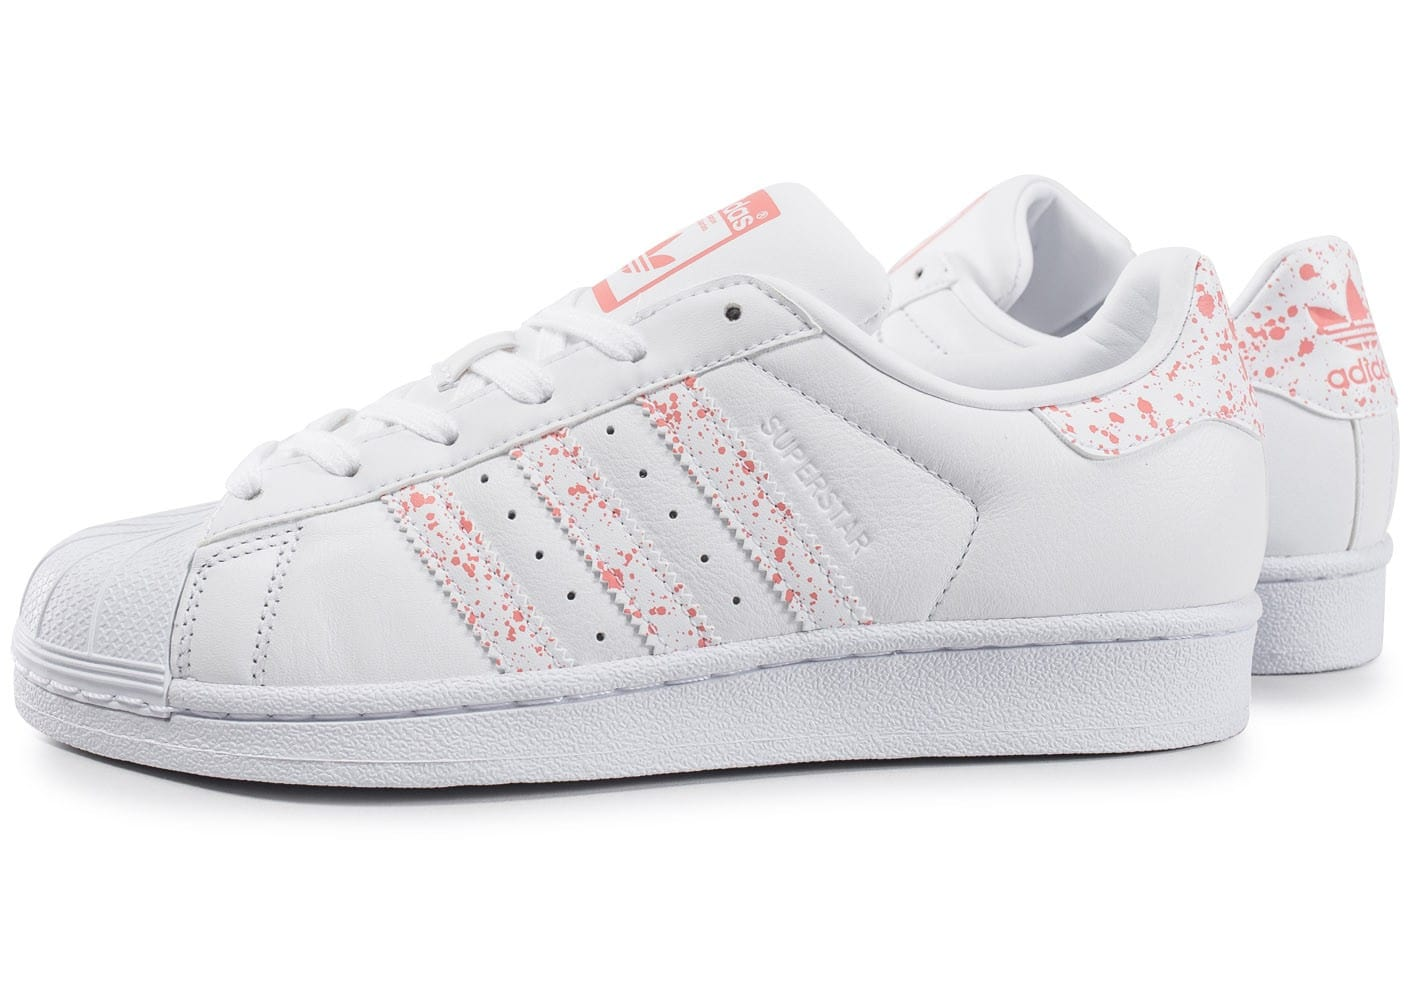 adidas superstar speckle blanche et rose chaussures adidas chausport. Black Bedroom Furniture Sets. Home Design Ideas